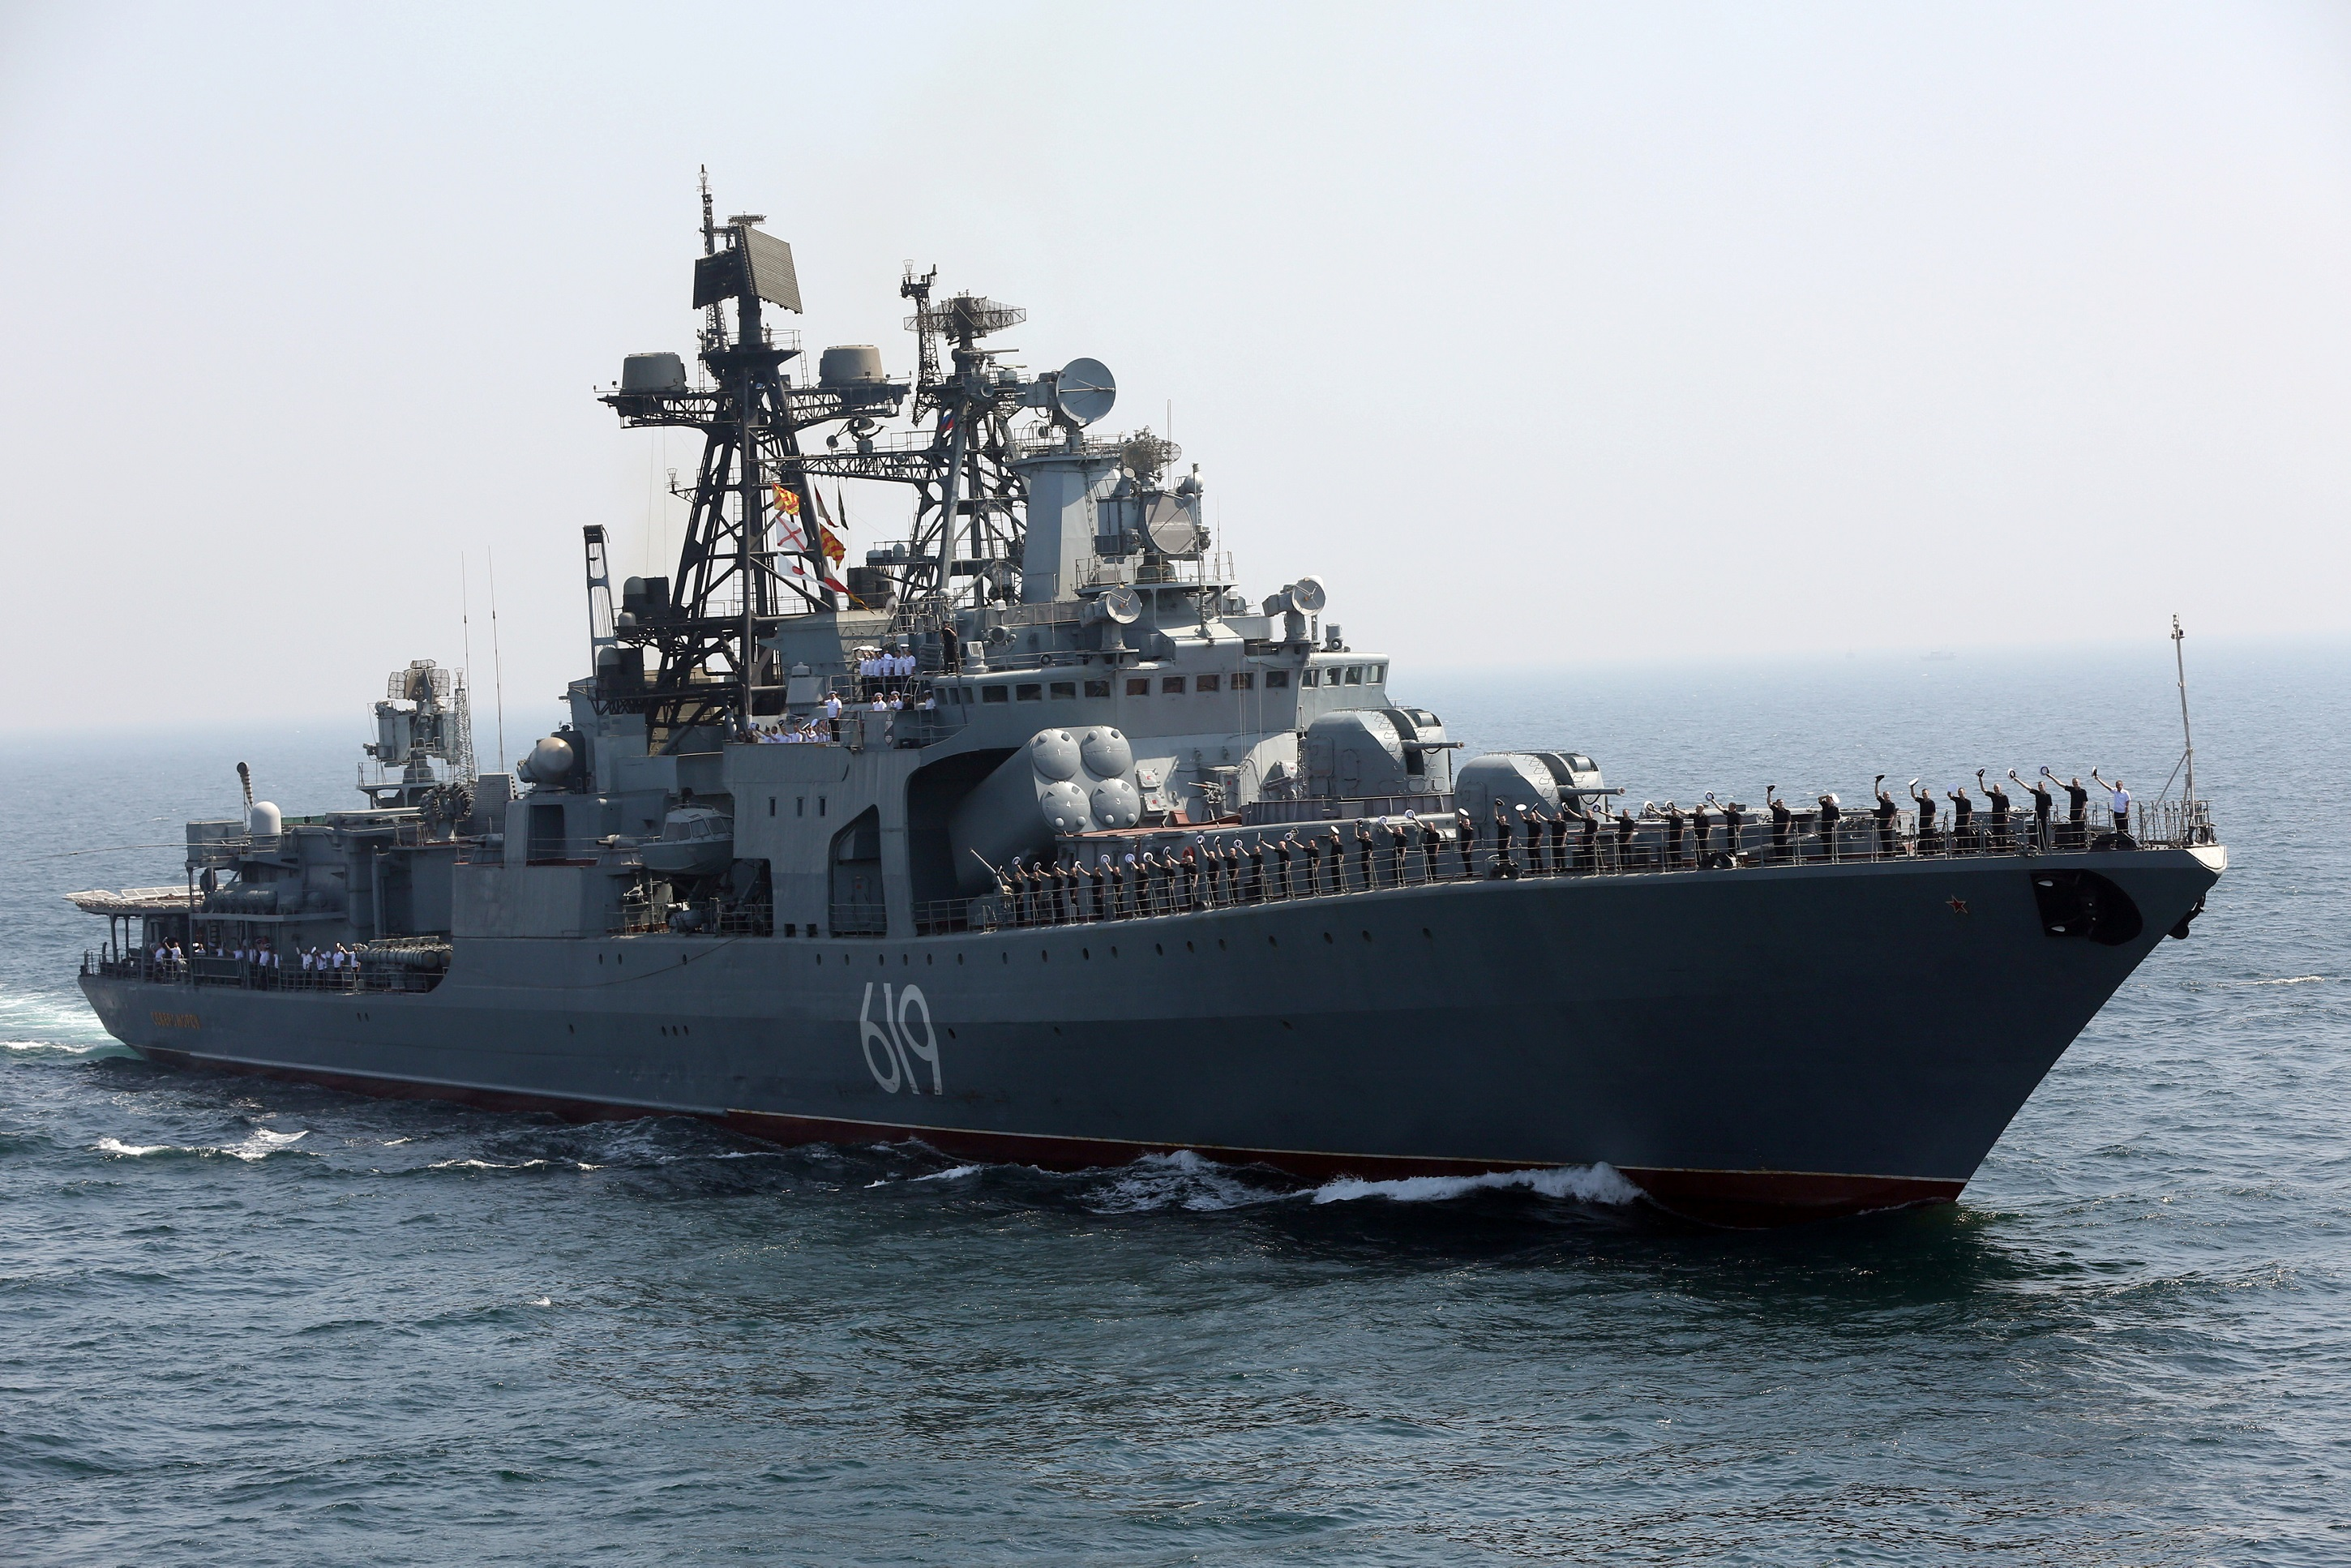 Imagine This Almost Every Russian Warship Armed With